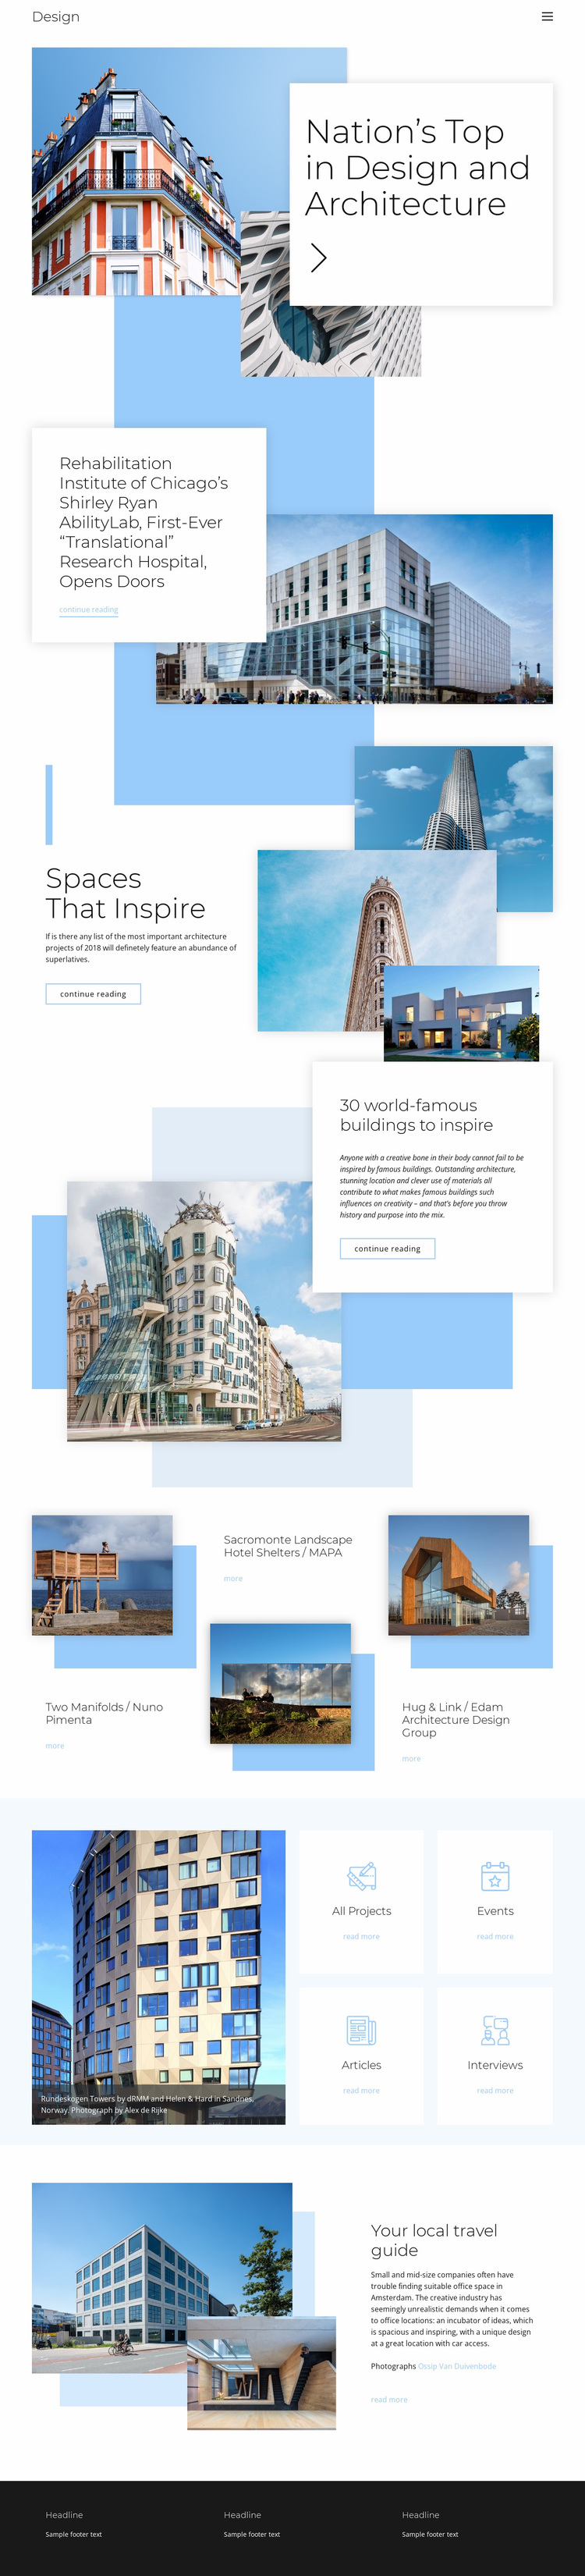 Rating for architecture Website Design